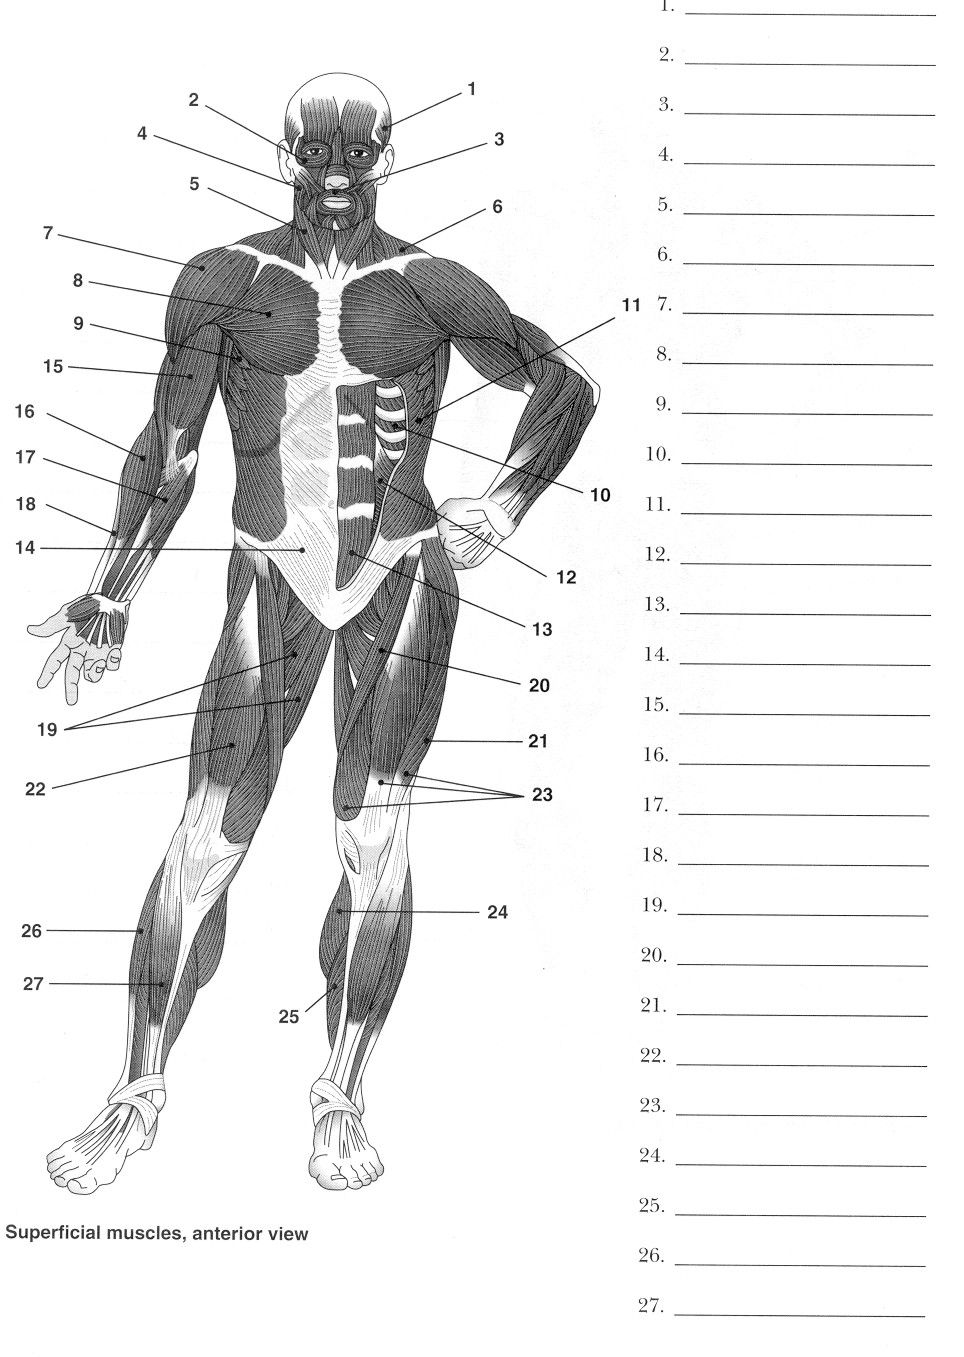 muscle diagram | Body Systems | Pinterest | Gesundheitsunterricht ...